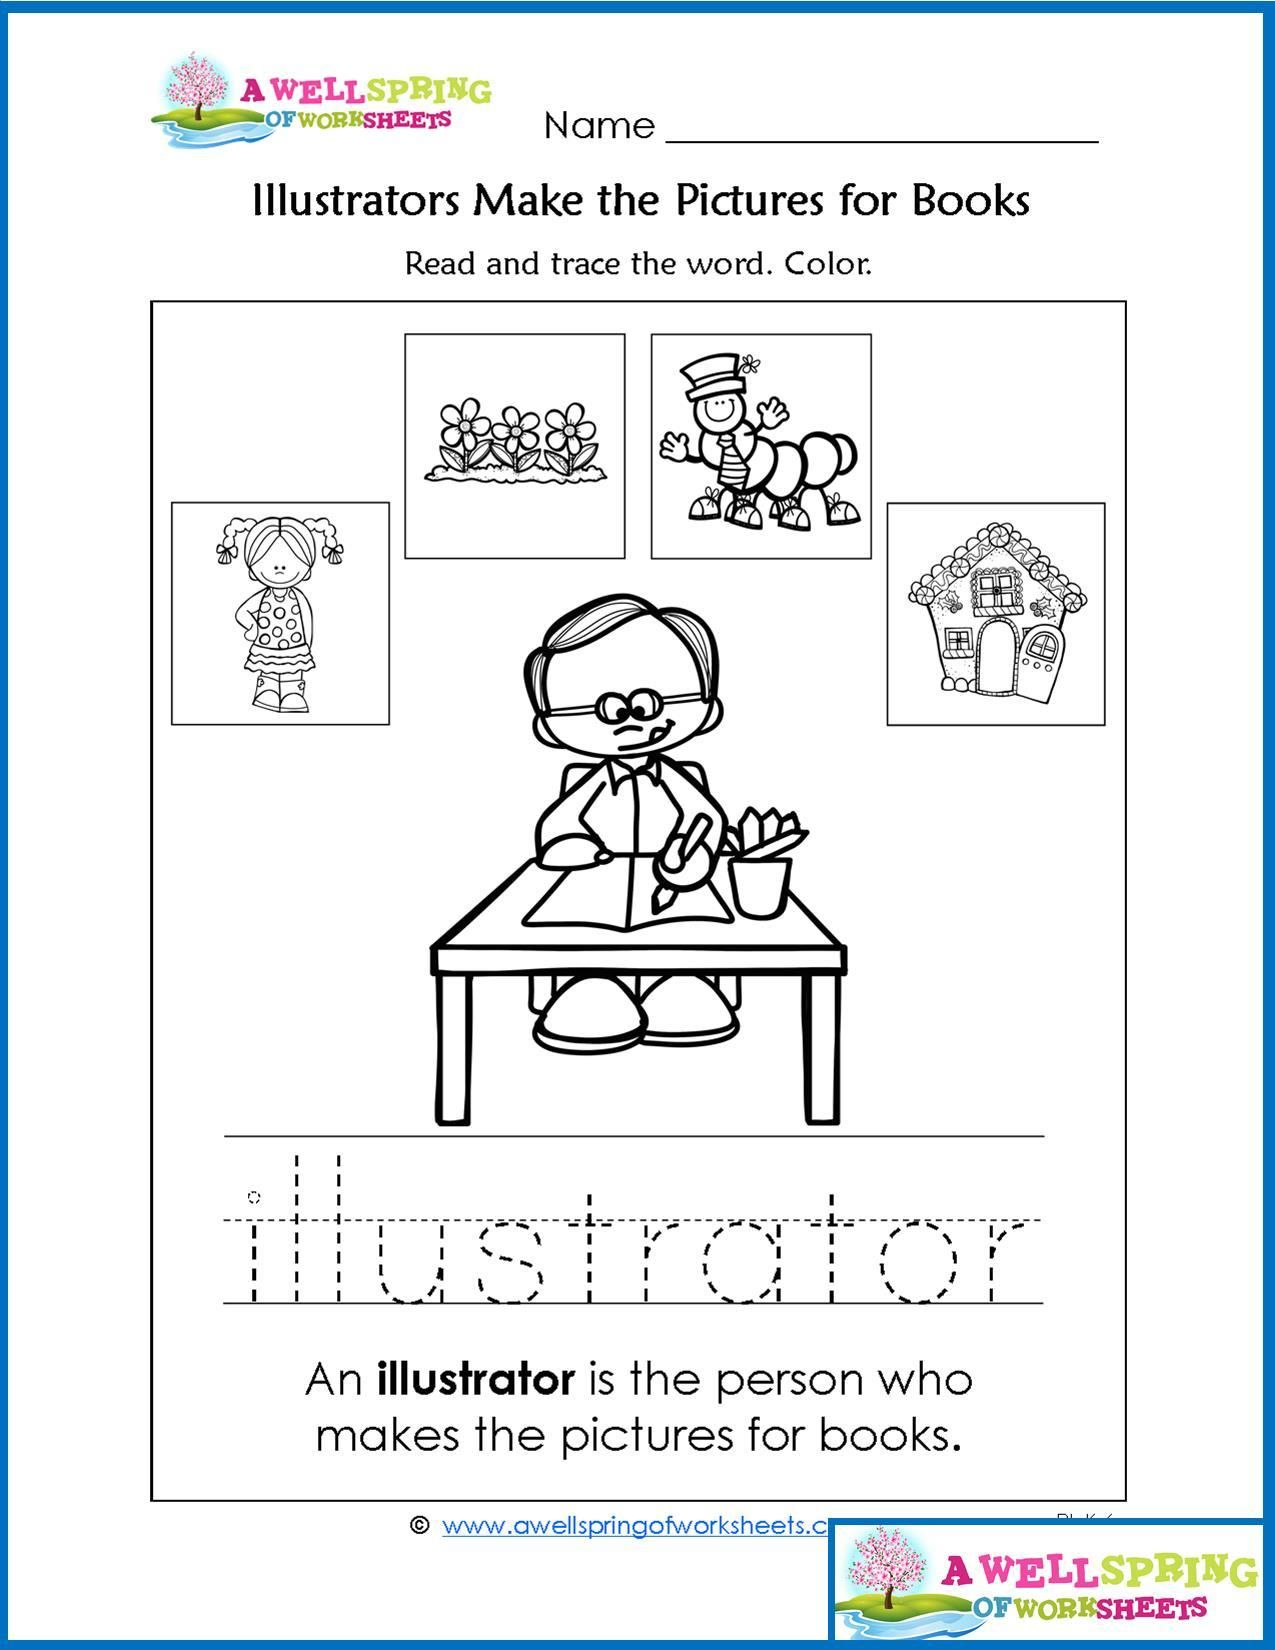 Worksheets By Subject A Wellspring Of Worksheets Parts Of A Book Library Skills Kindergarten Library [ 1650 x 1275 Pixel ]